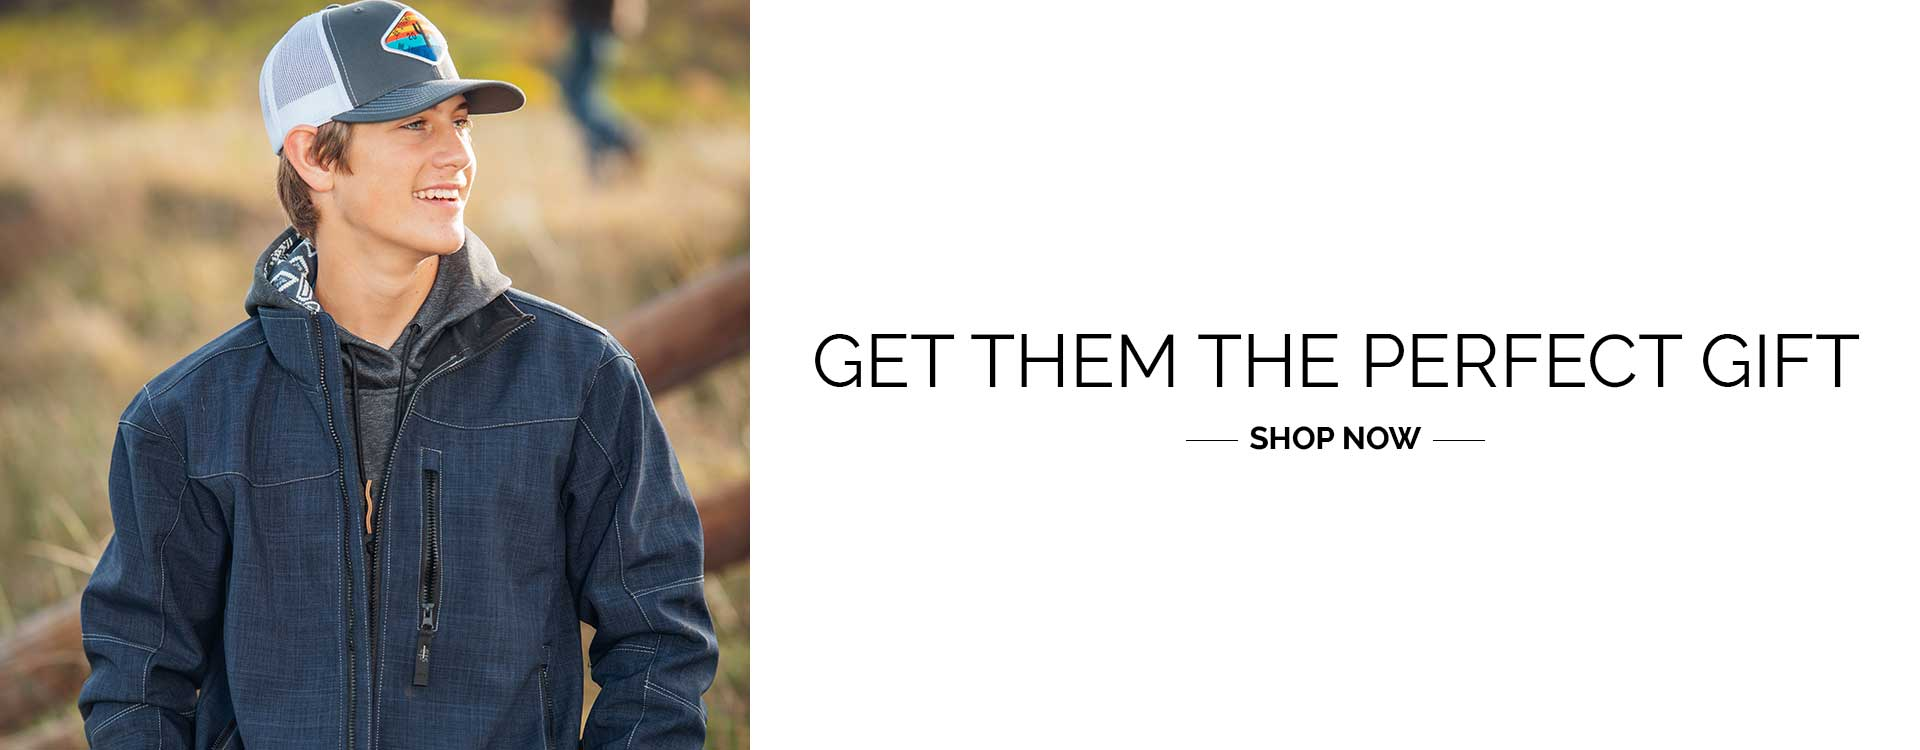 Get them the perfect gift Shop Youth - STS Ranchwear 2020 Holiday Gift Guide